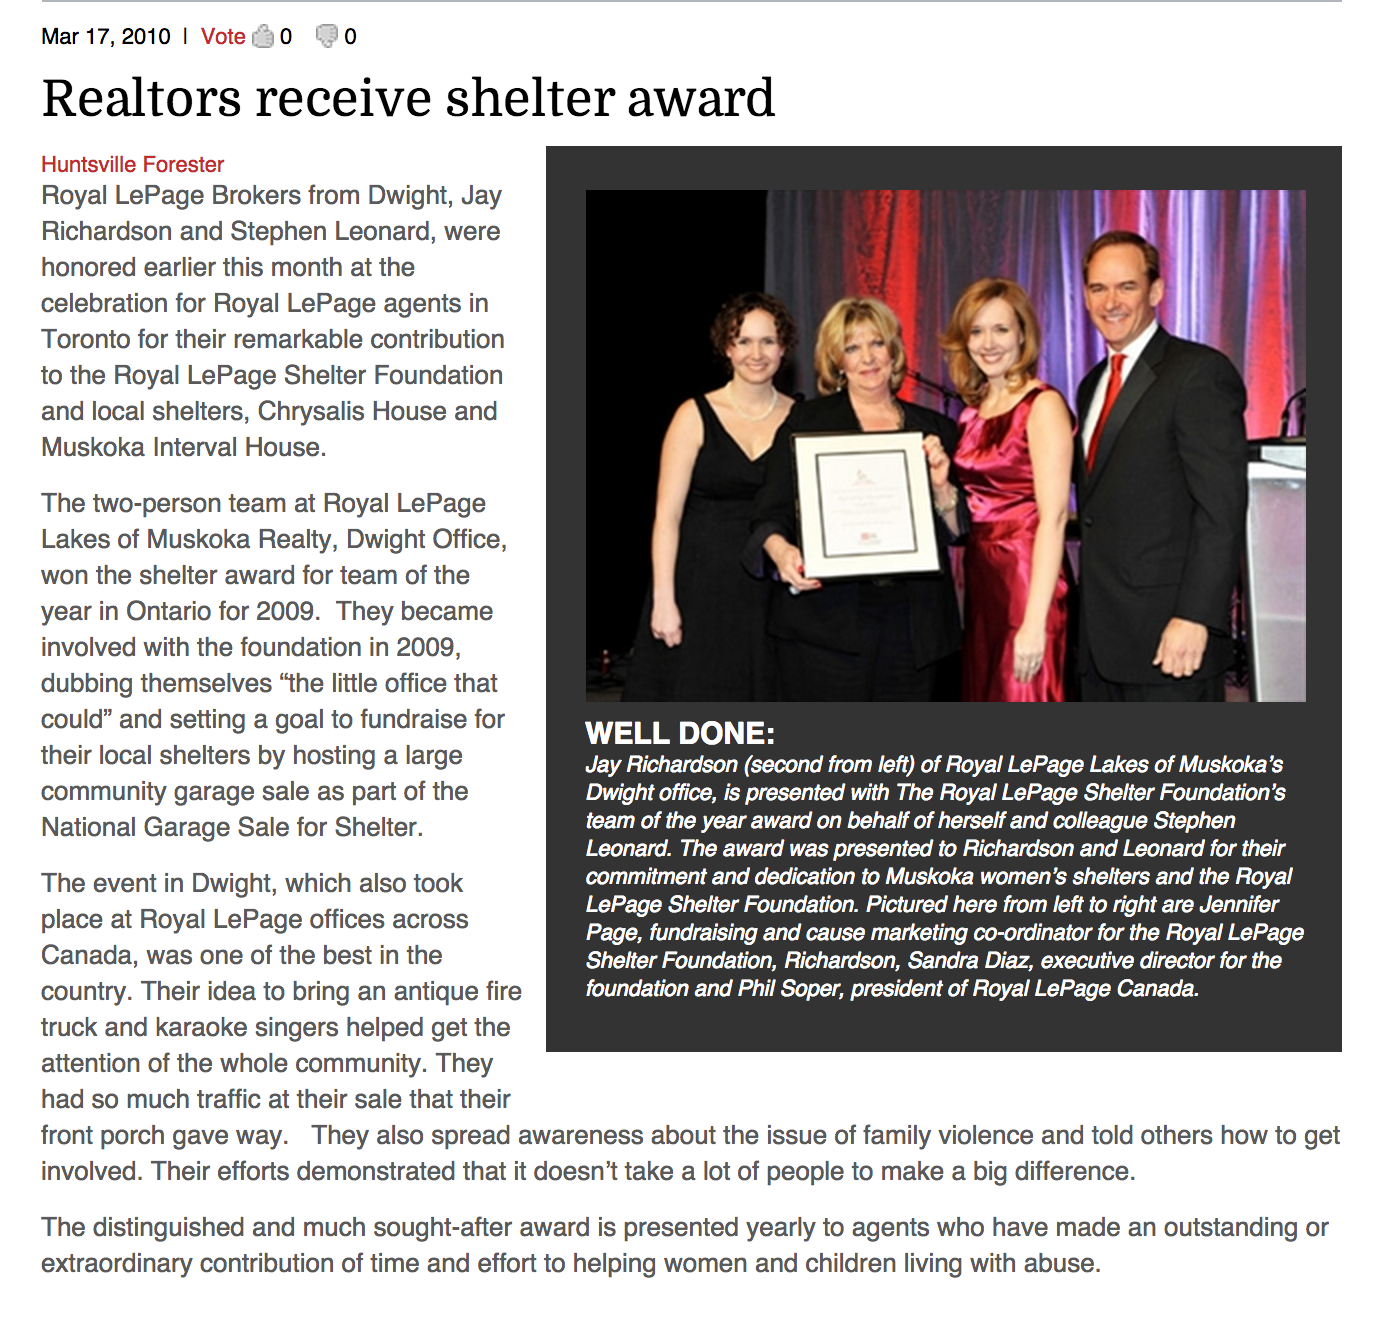 Realtors Receive Shelter Award